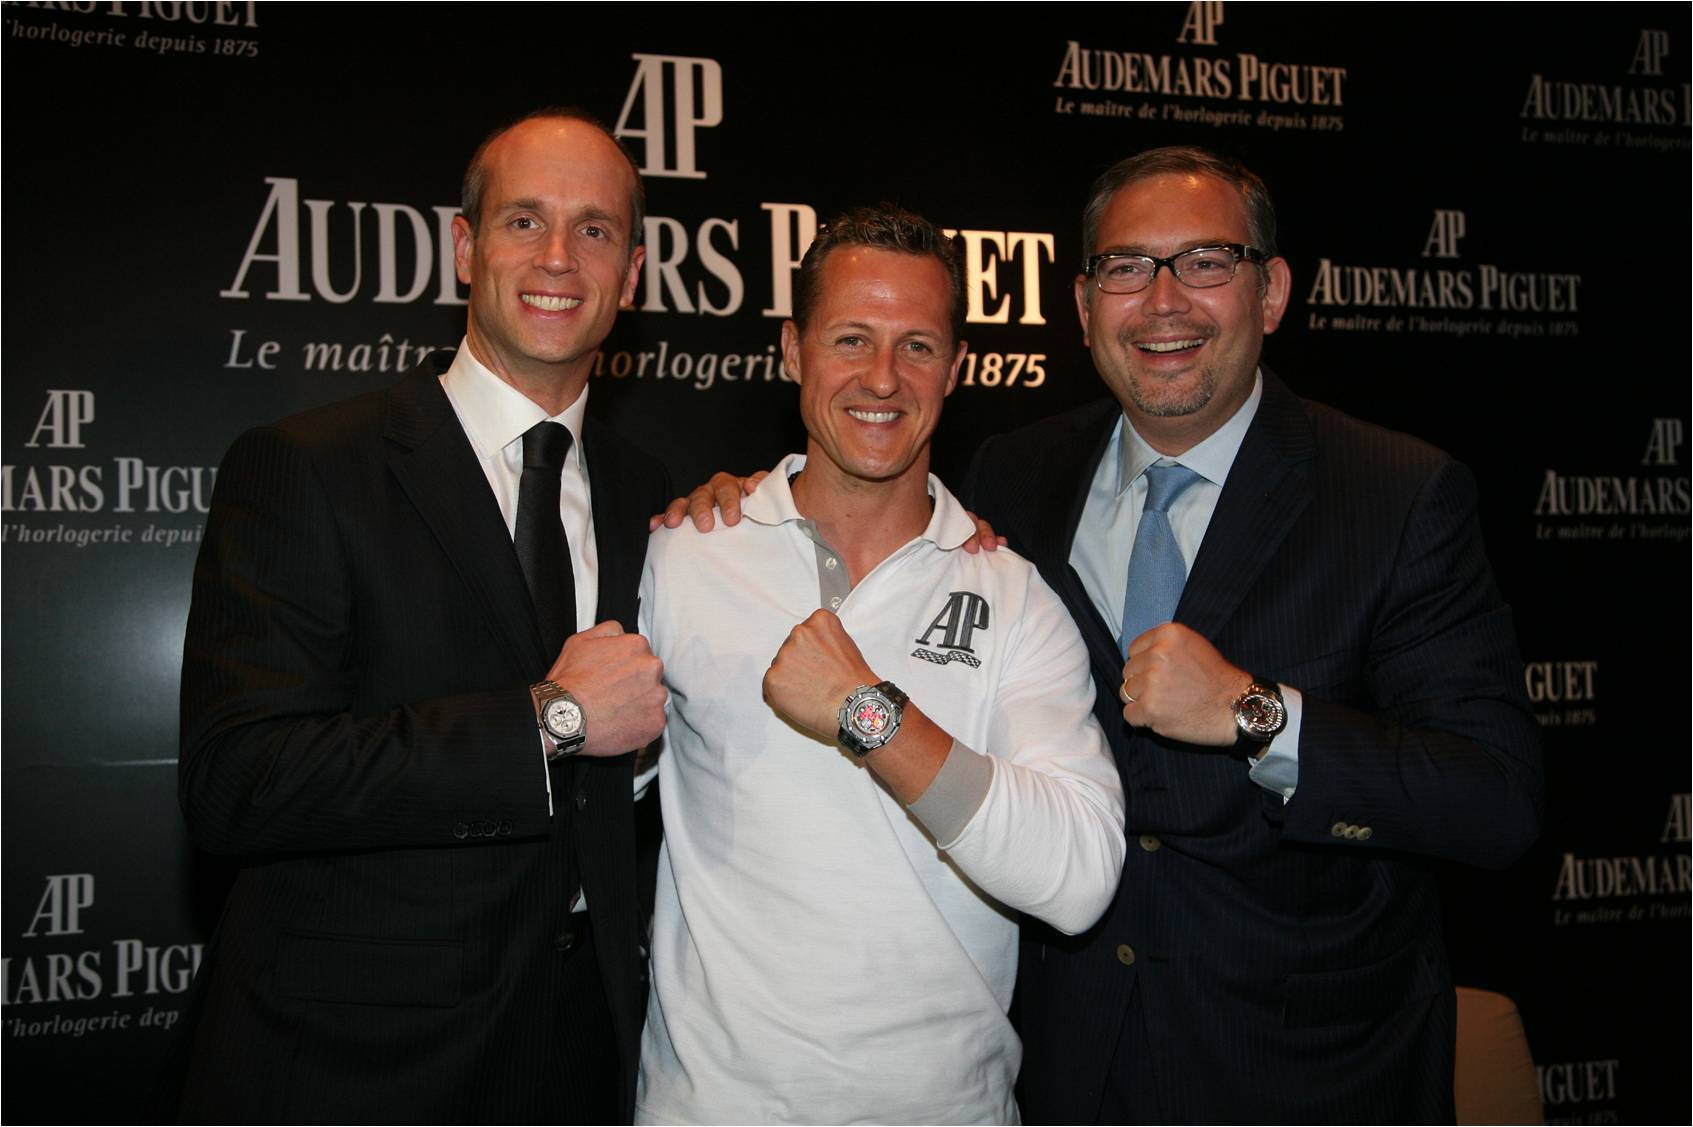 Haute Event: Michael Schumacher Makes Inaugural Appearance for Audemars Piguet in Shanghai